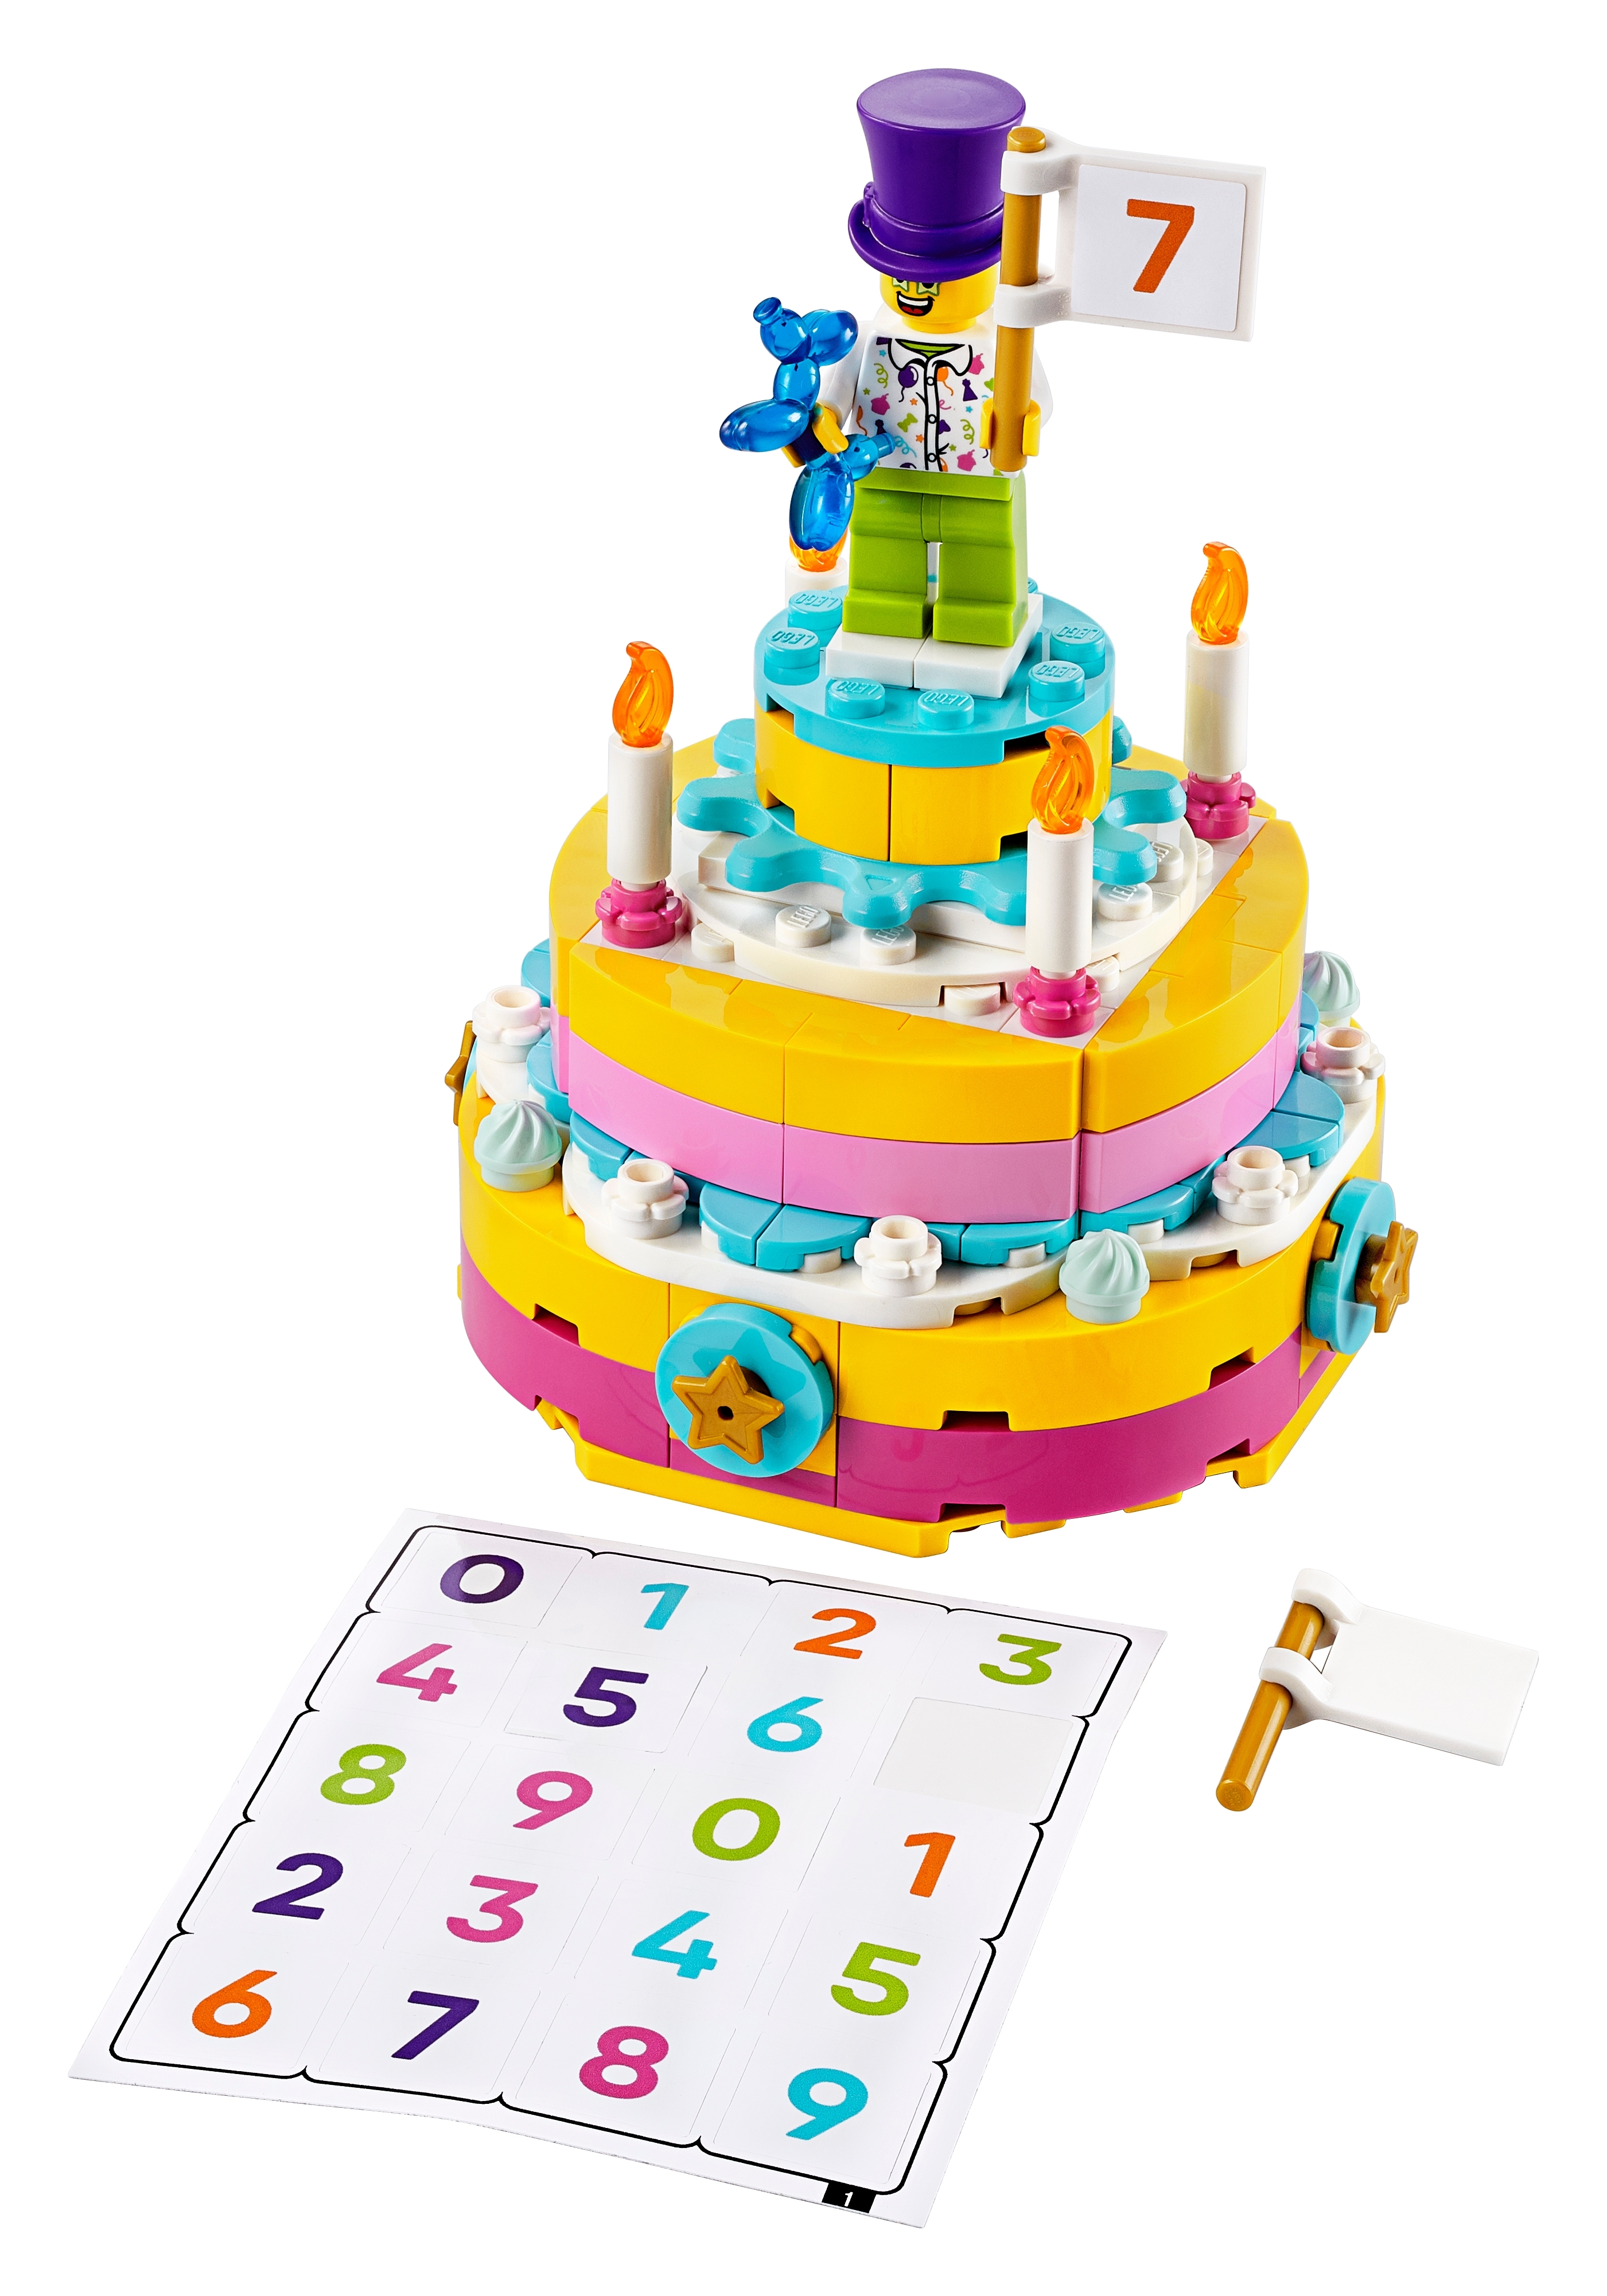 6 Years Age Official Lego Shop My